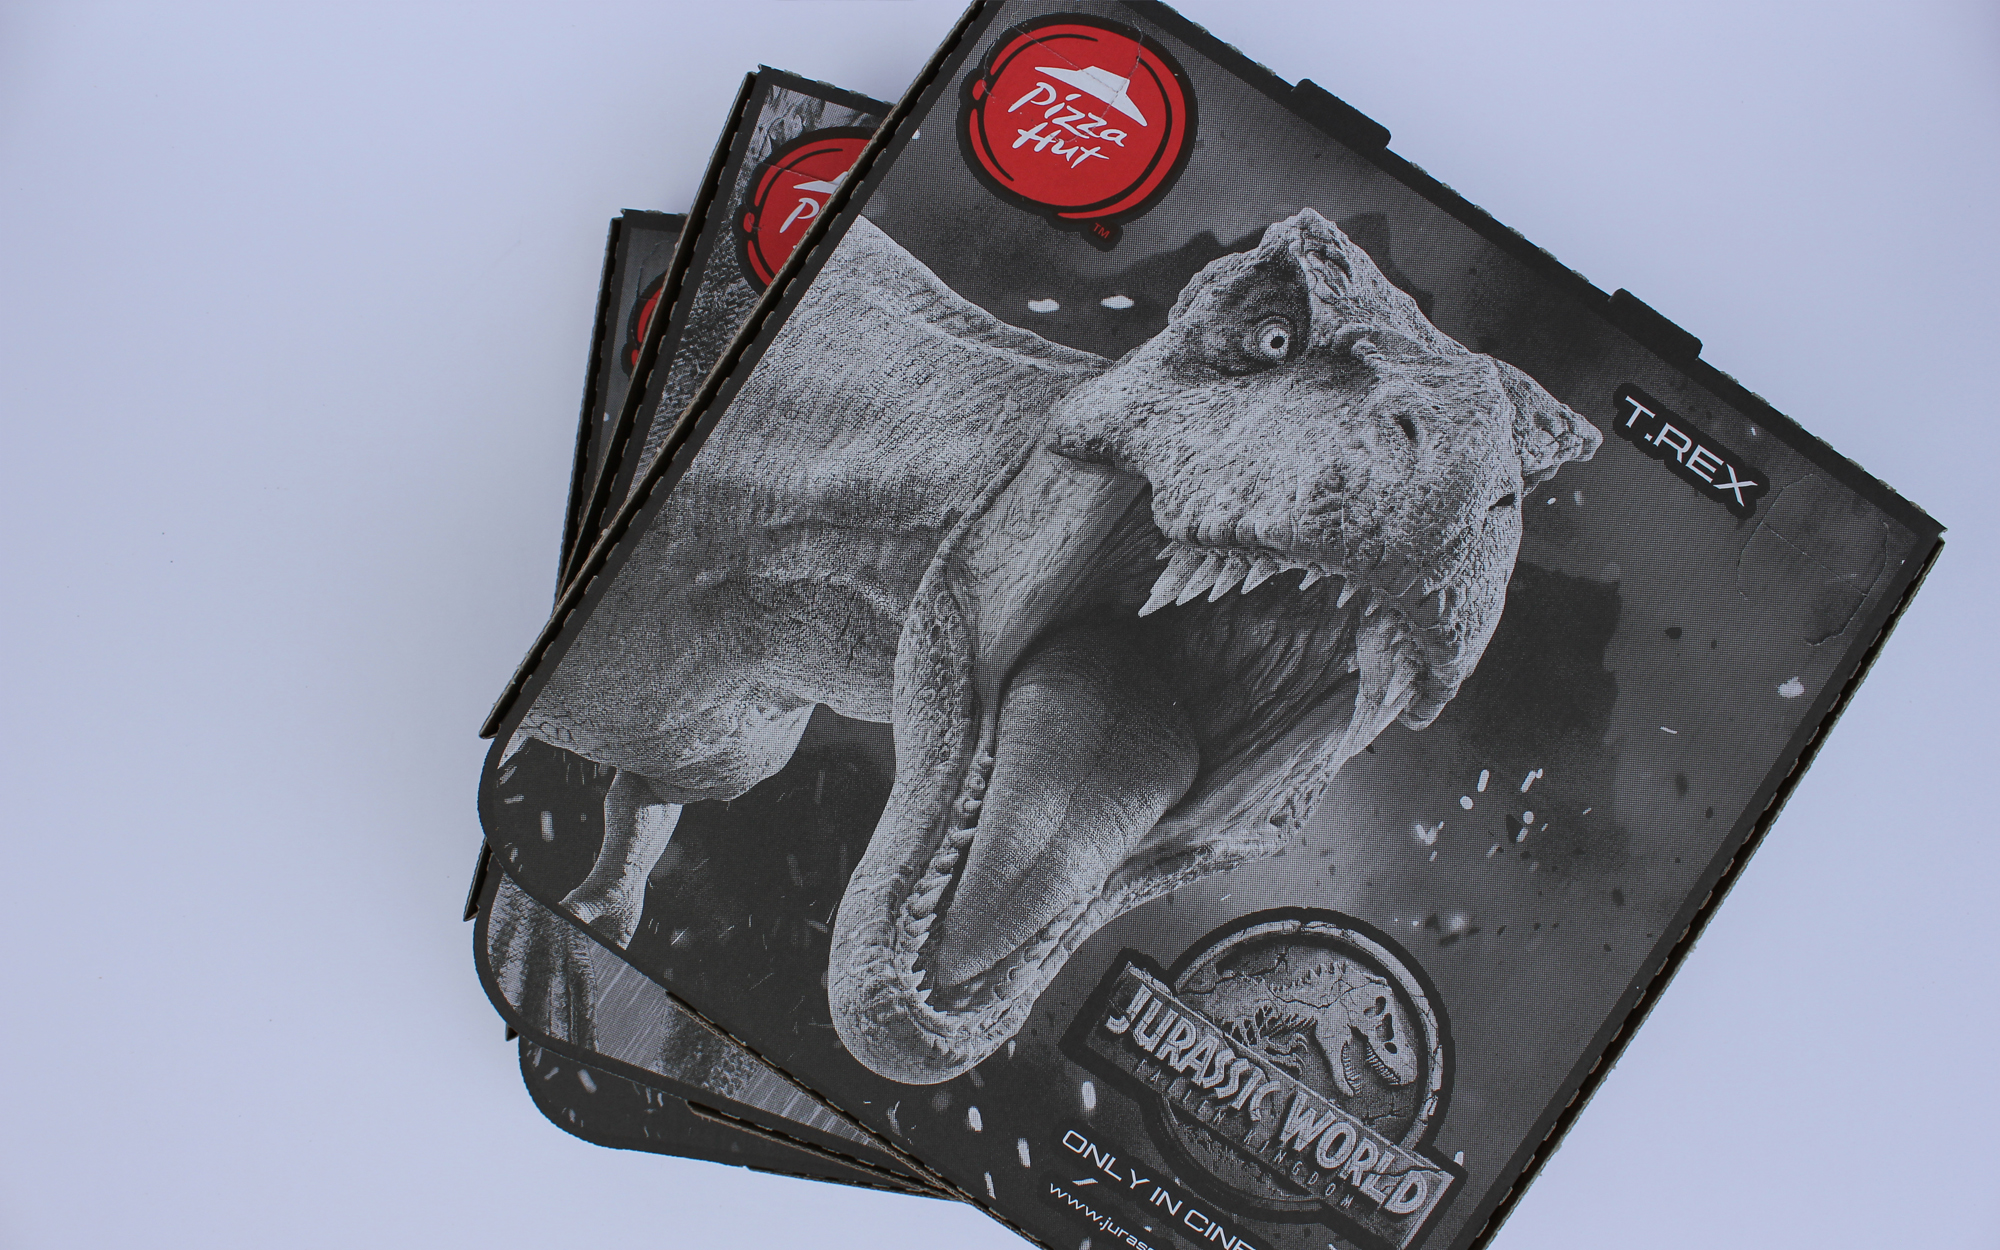 matthew_pomorski_graphic_designer_pizza_box_artwork_pizza_hut_jurassic_world_fallen_kingdom_promotion_collection_2